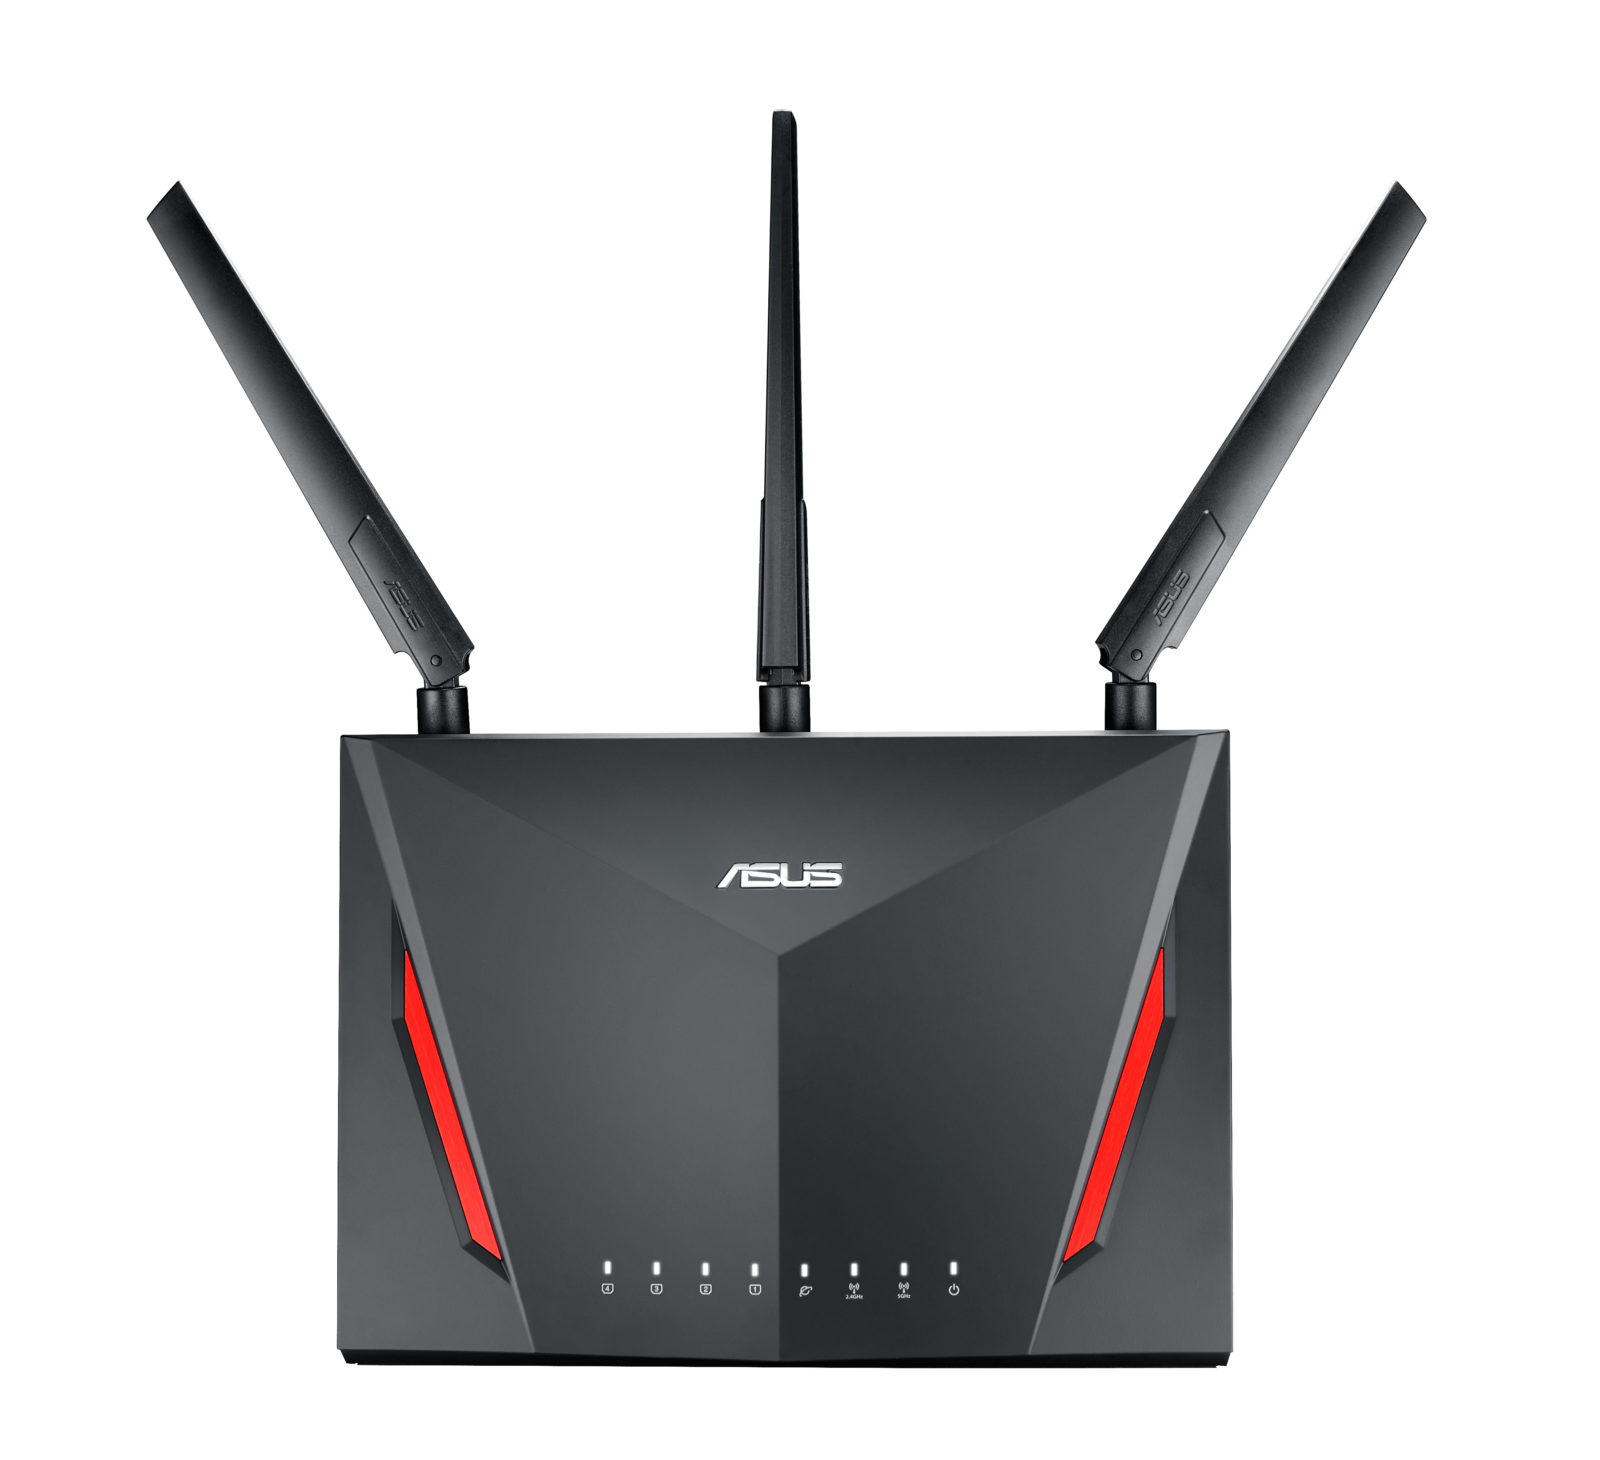 Asus-ac2900-router